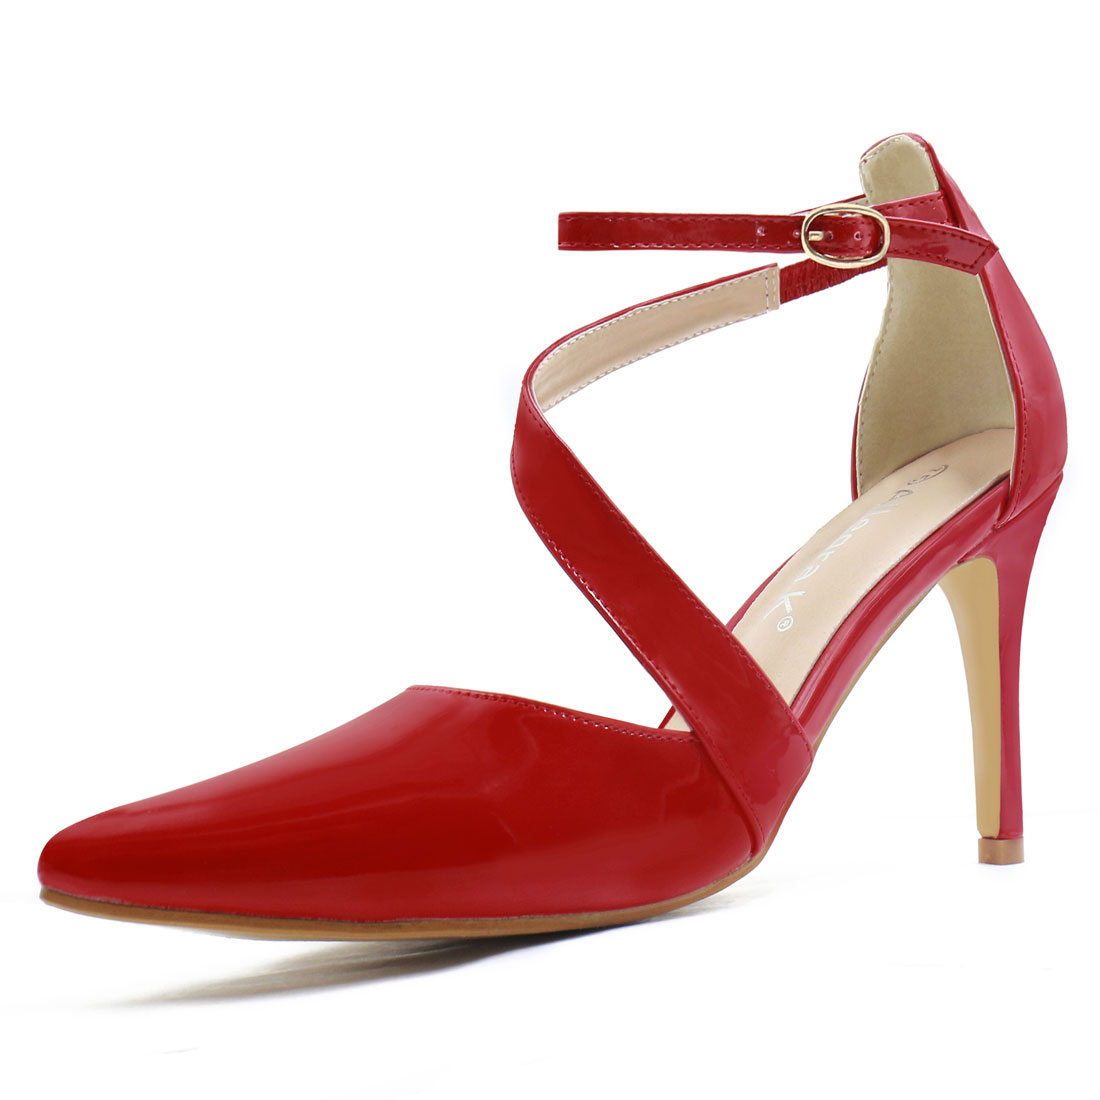 Women Asymmetrical Strap Stiletto Heel Pointy-Toe Pumps Red US 6.5